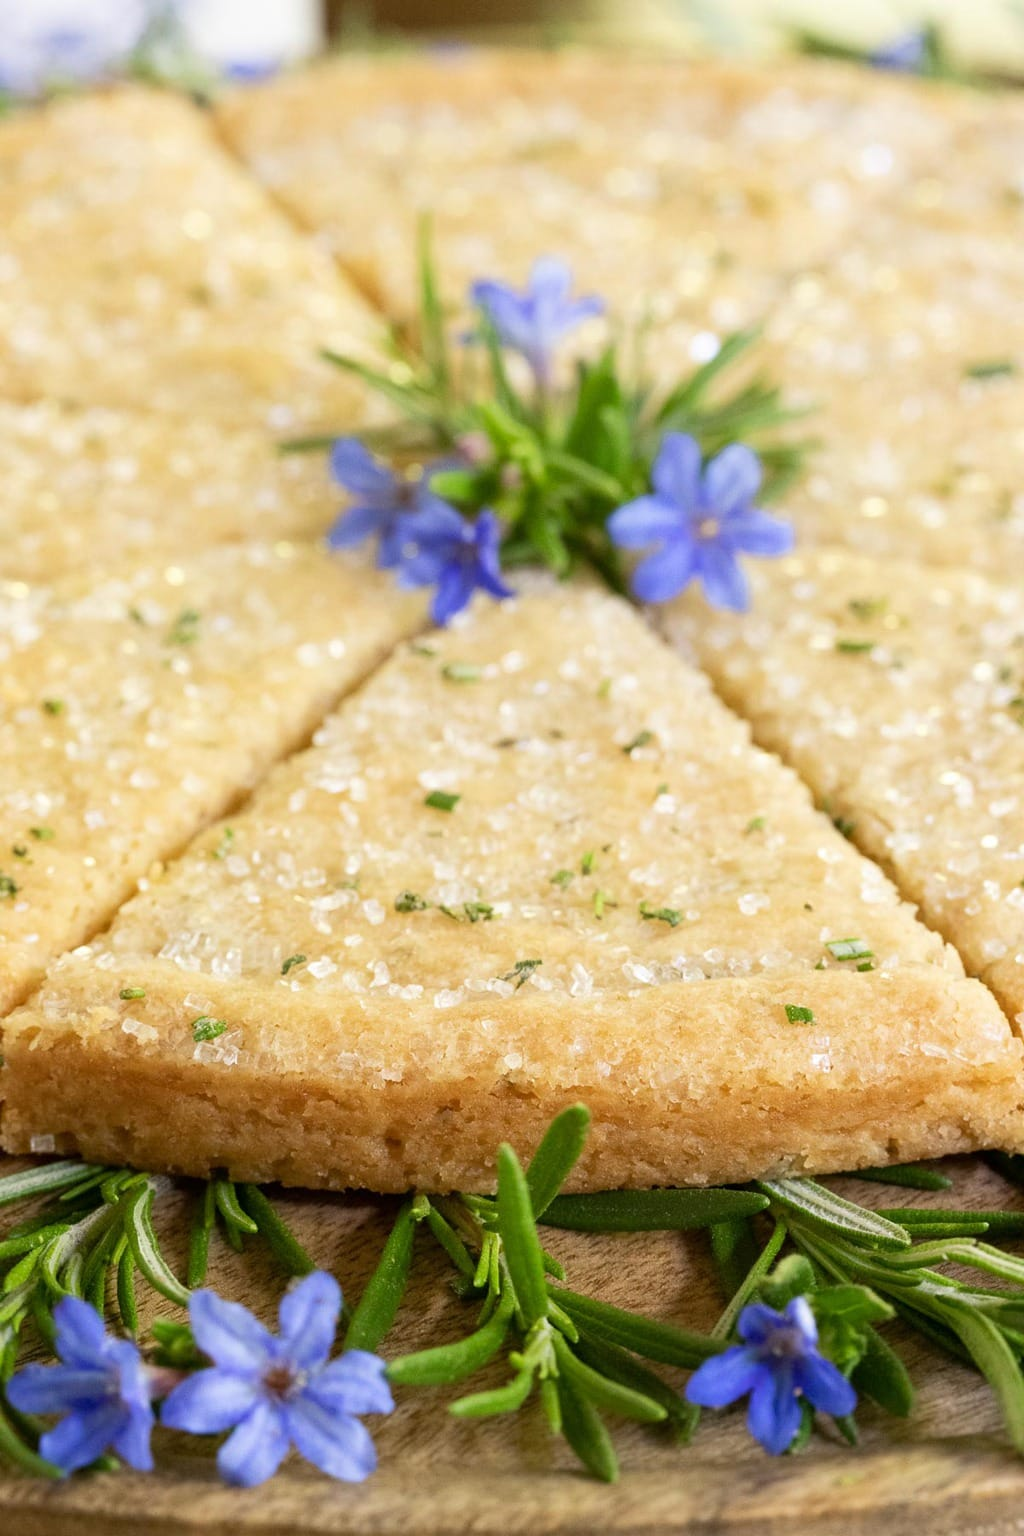 Closeup photo of a pie cut pan of Ridiculously Easy Rosemary Shortbread decorated with tiny blue flowers.